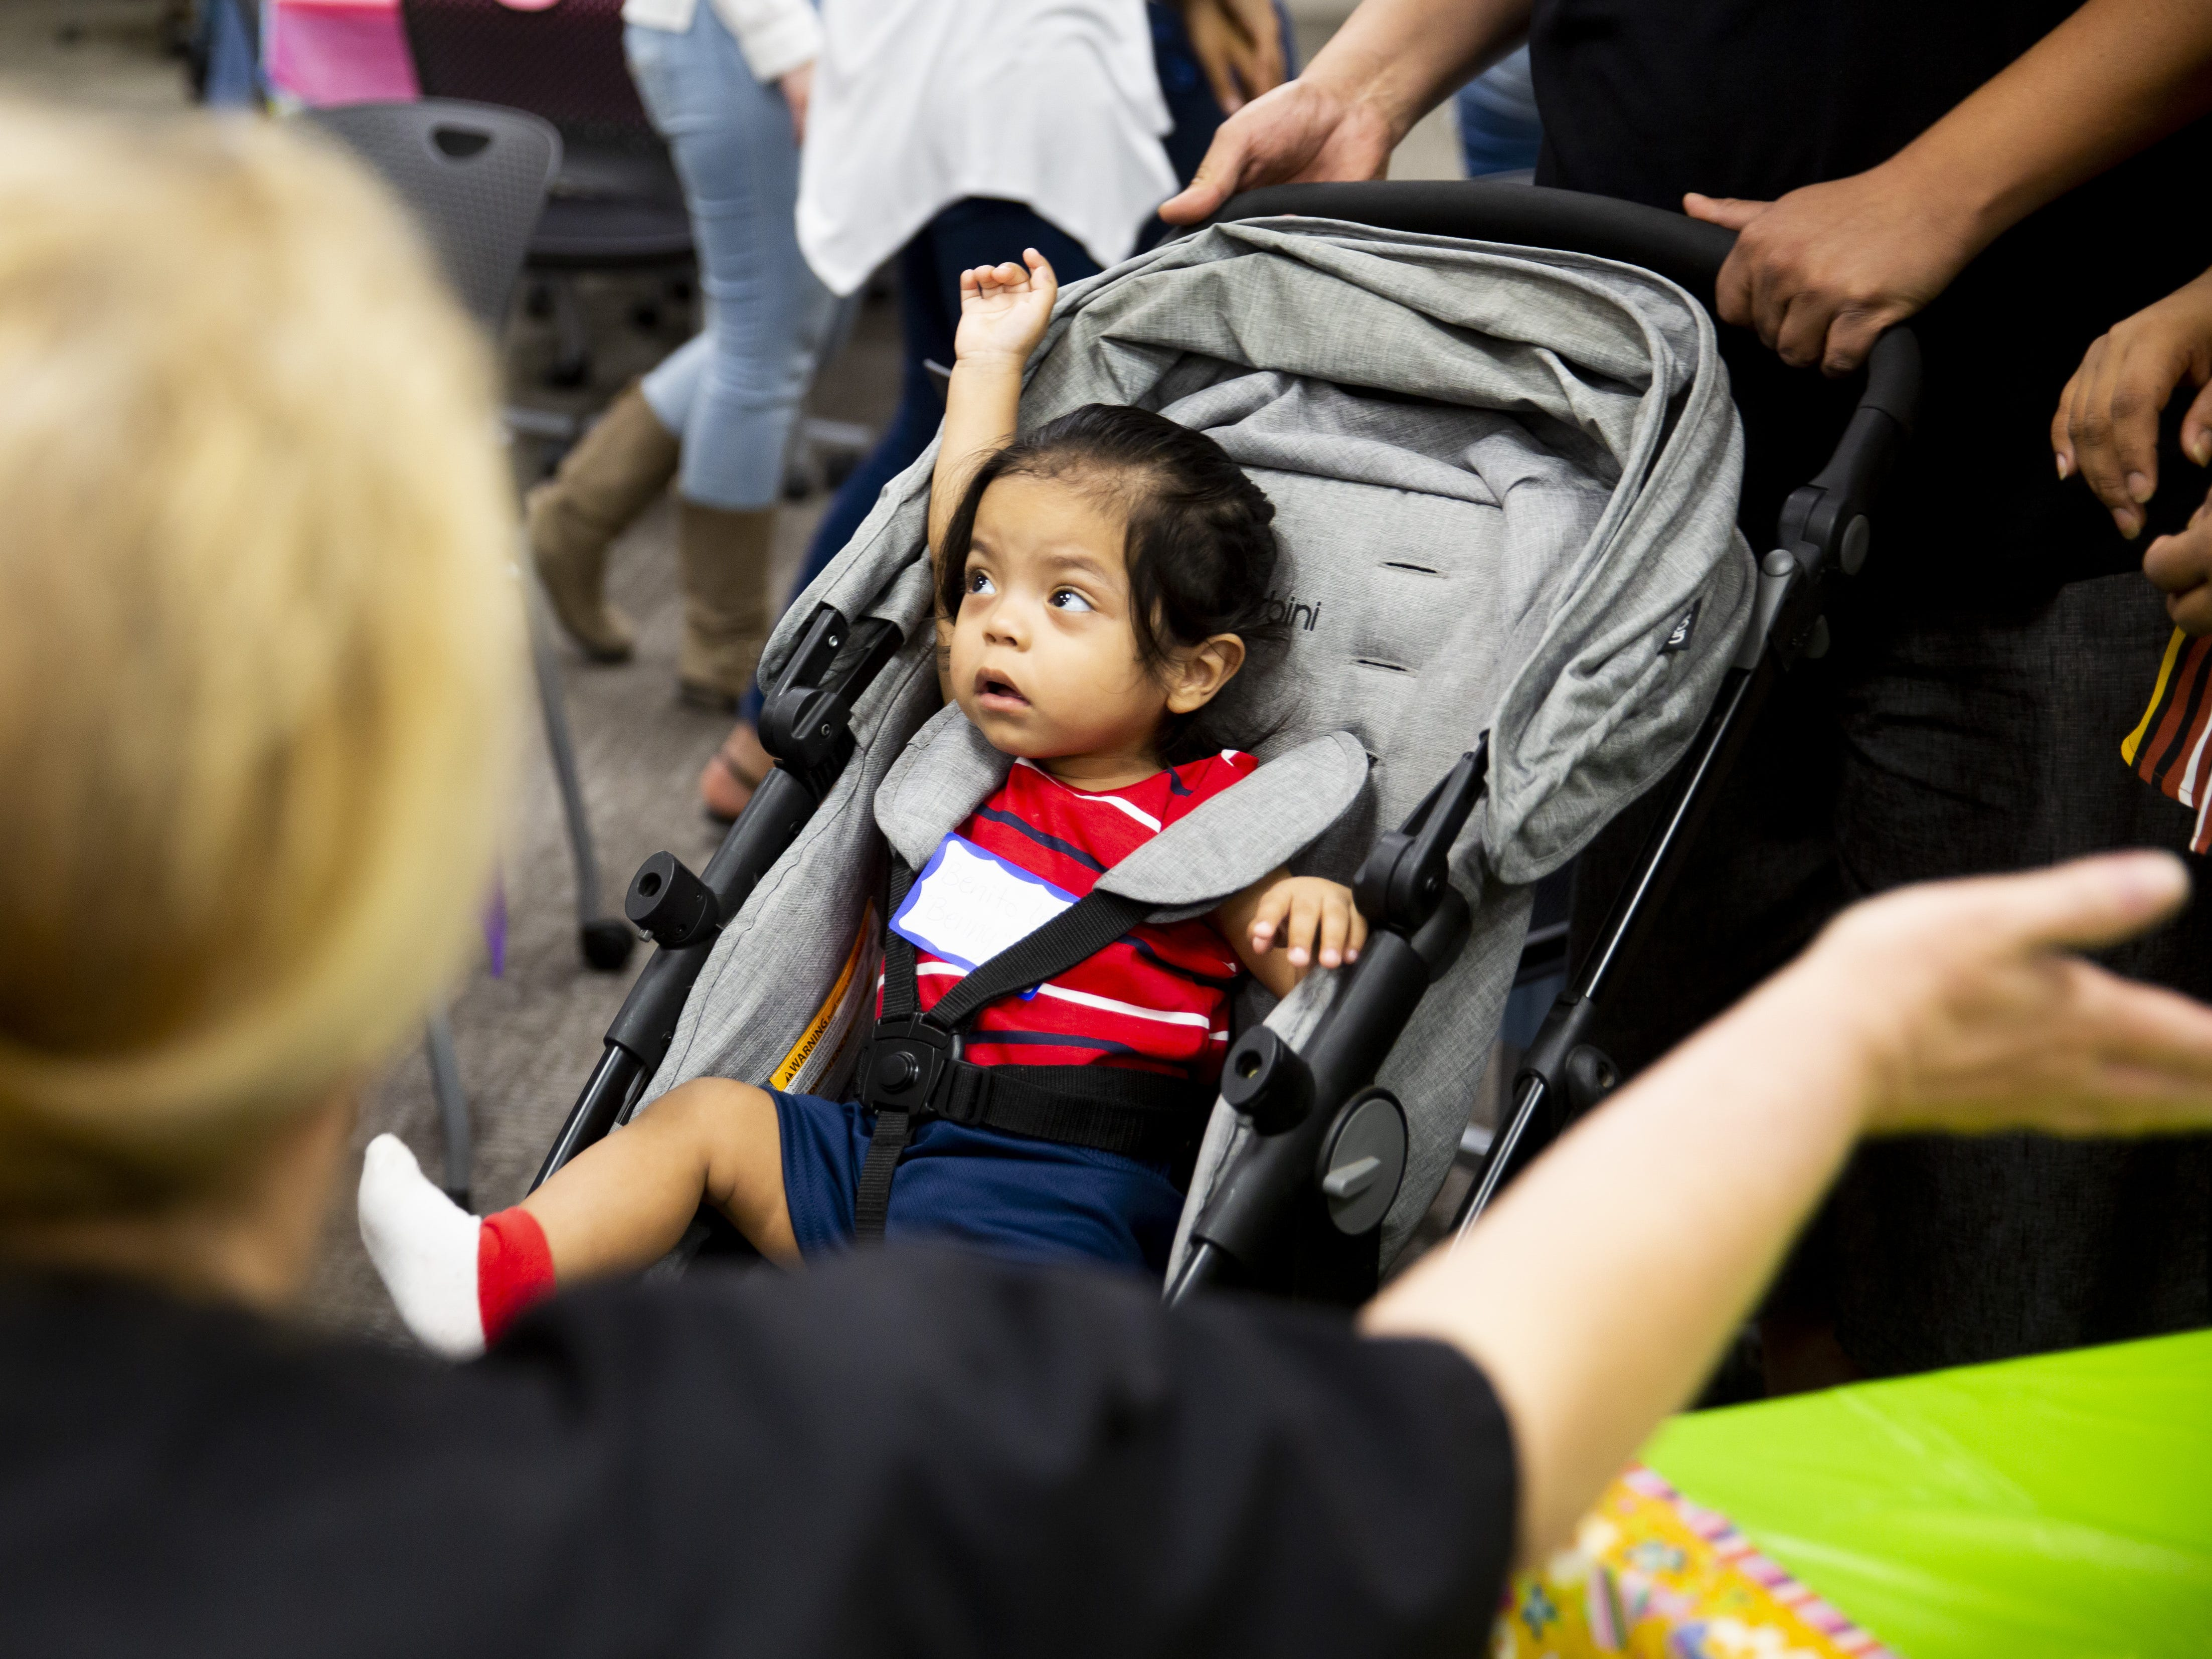 Benito Lupe Lopez, who was born three months early, stretches in his stroller at the Preemie NICU Reunion at Banner University Medical Center on April 13, 2019.